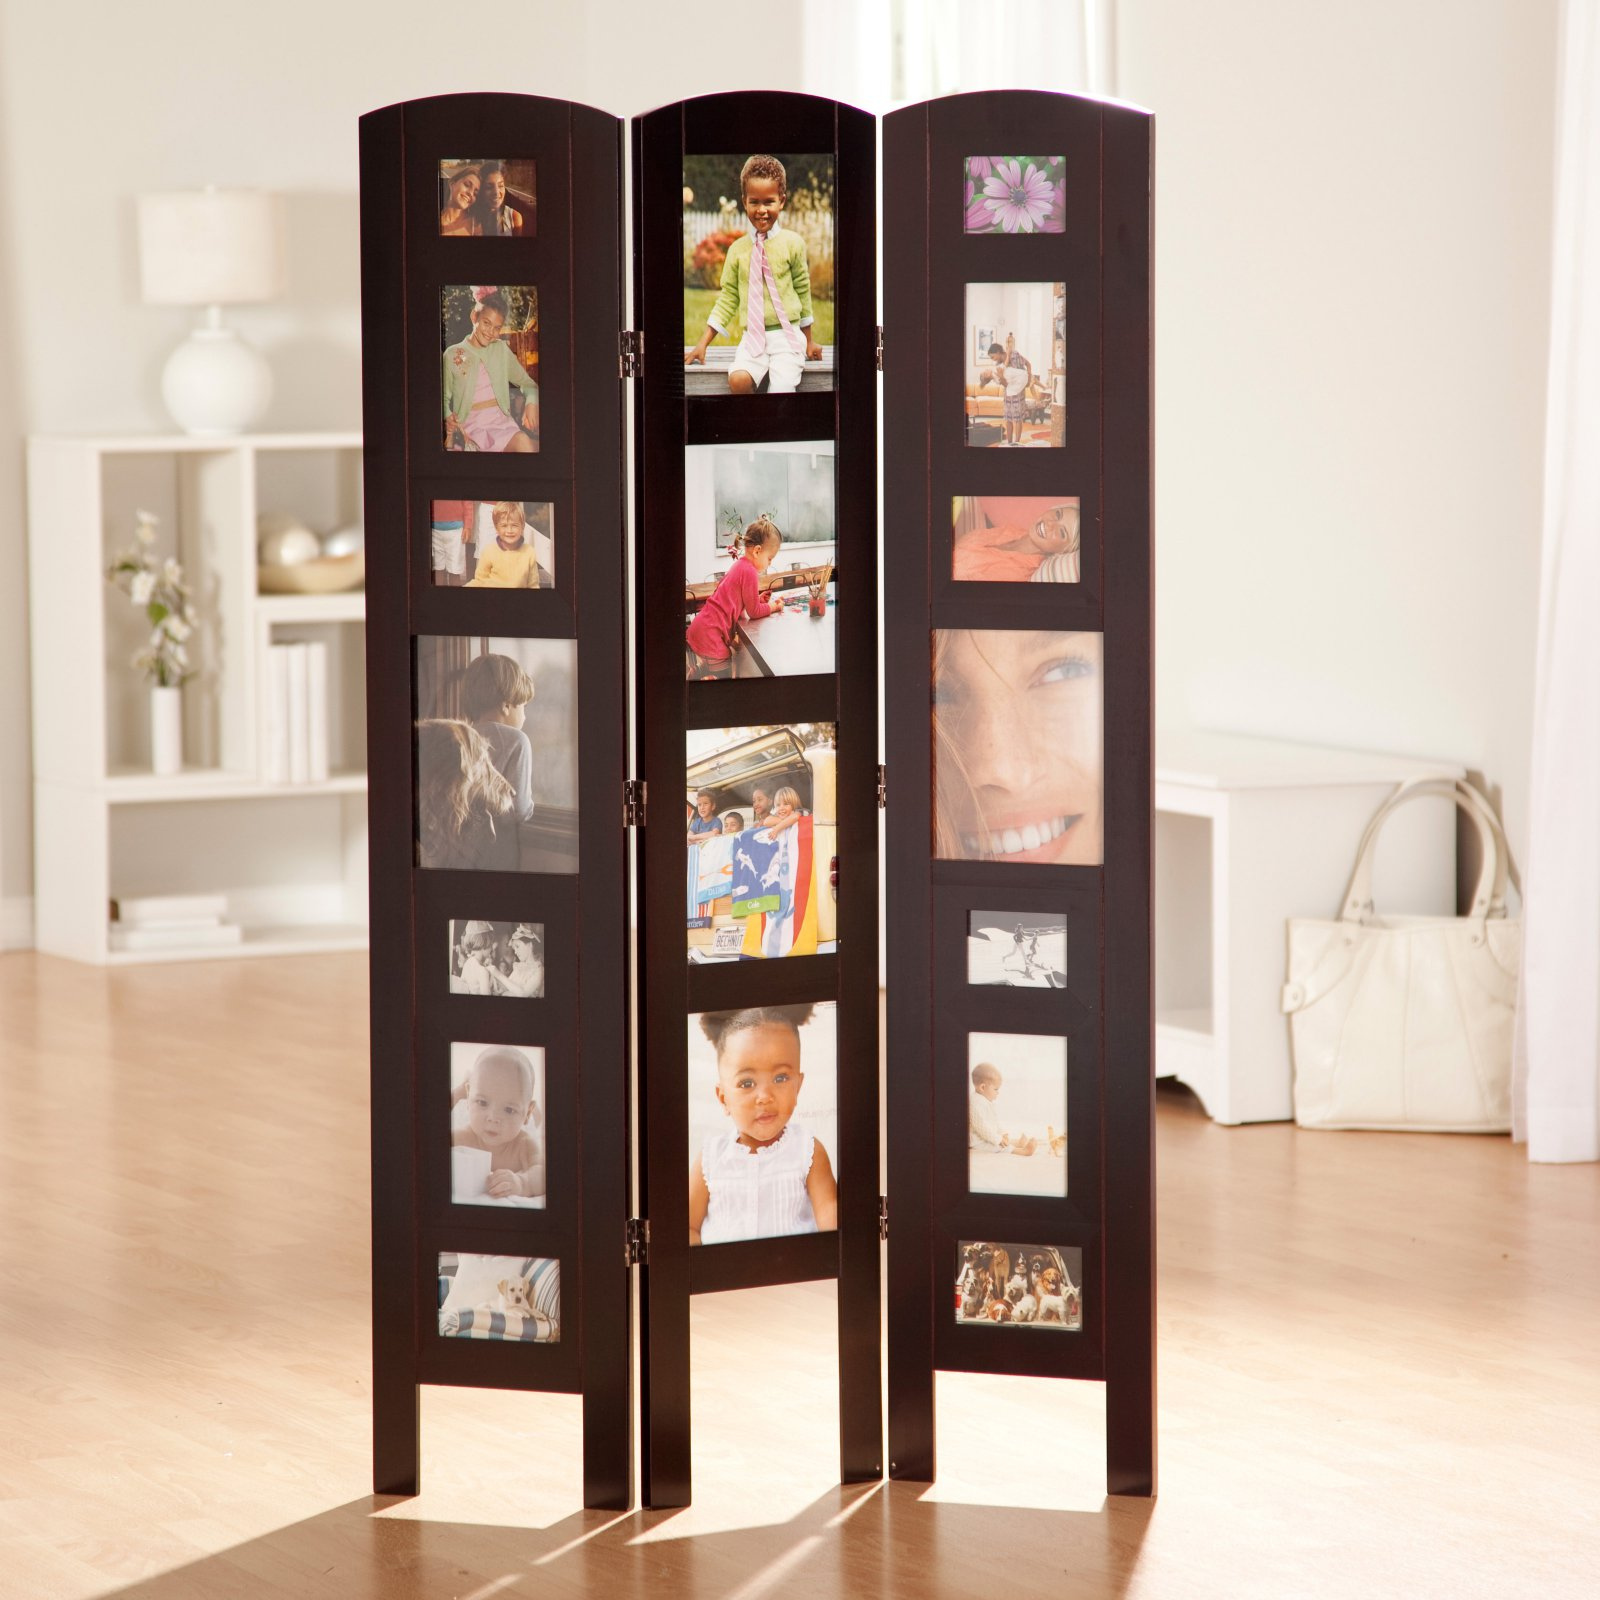 Memories Photo Frame Room Divider - Rosewood 3 Panel